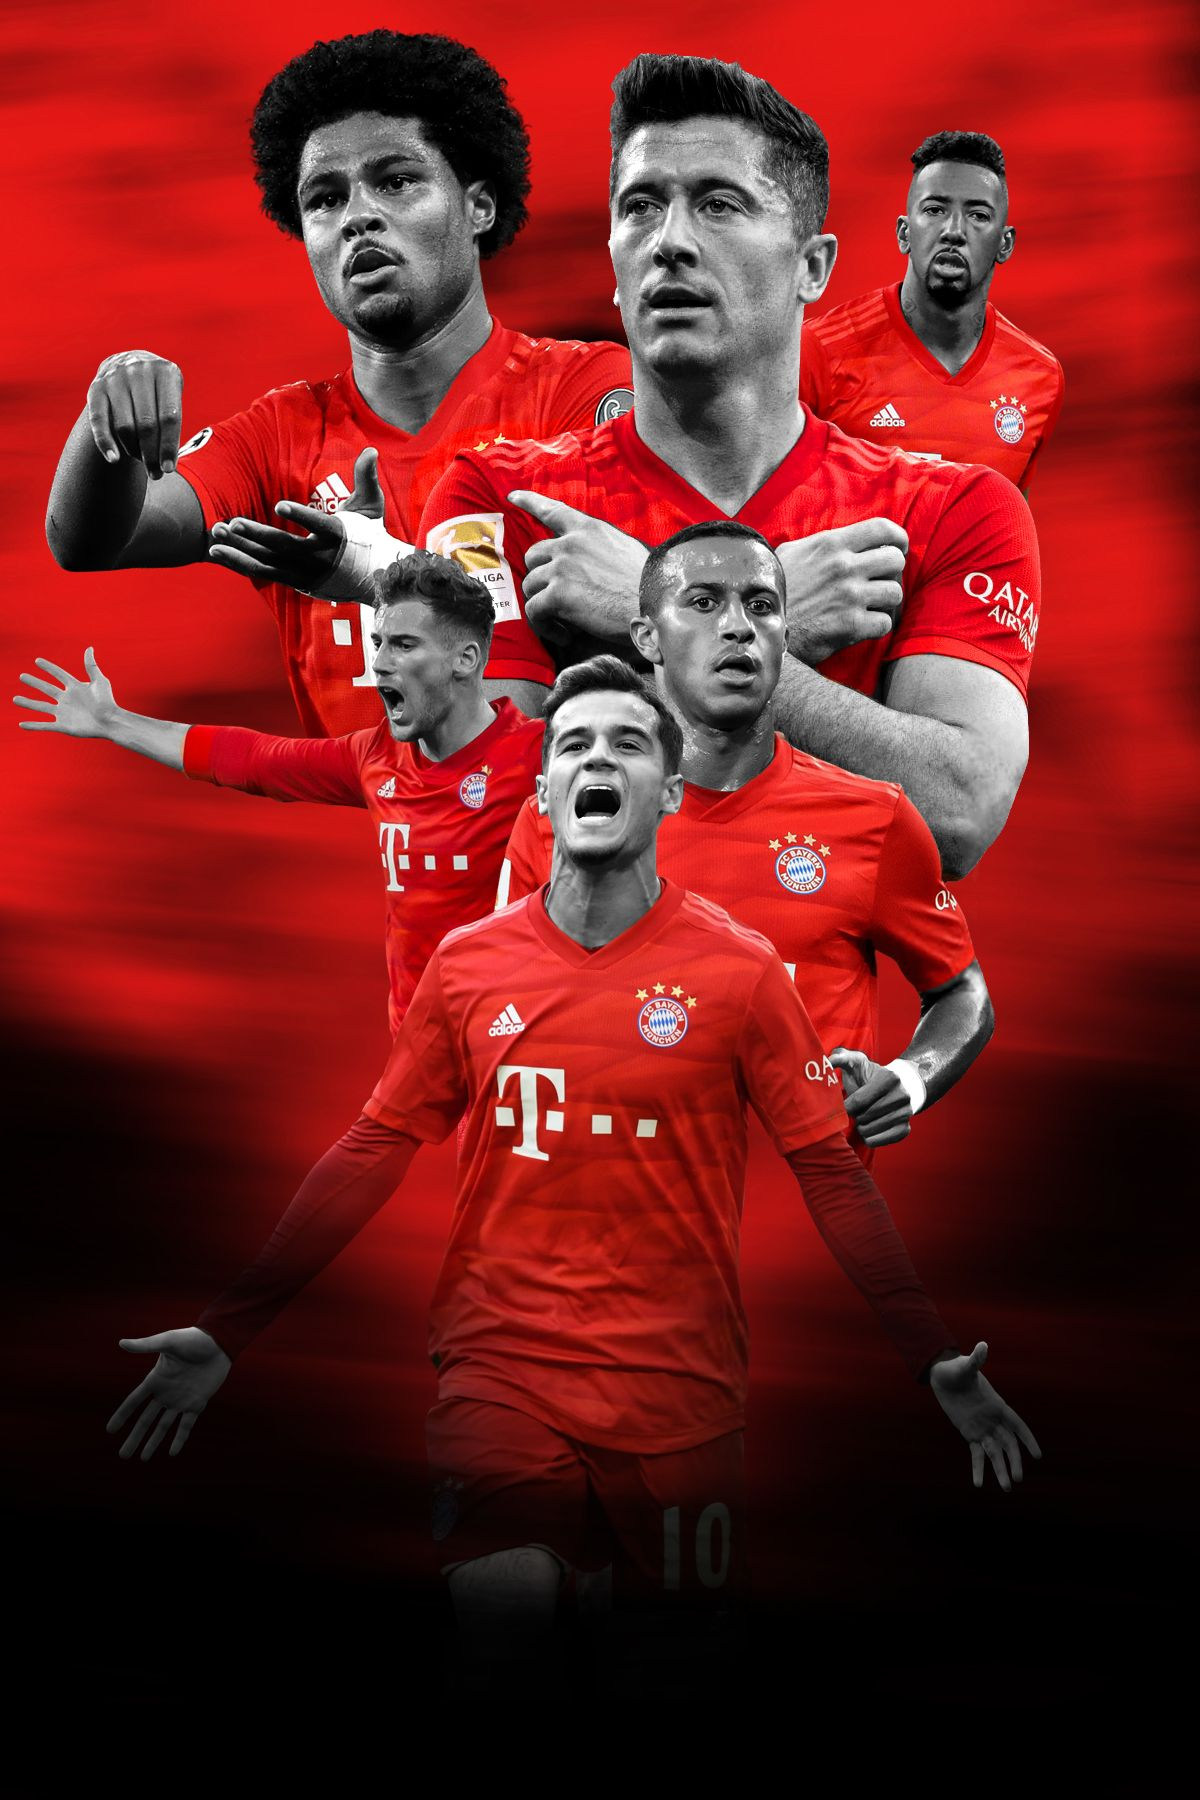 Bayern Munich Poster In 2020 Football Poster Bayern Munich Wallpapers Bayern Munich